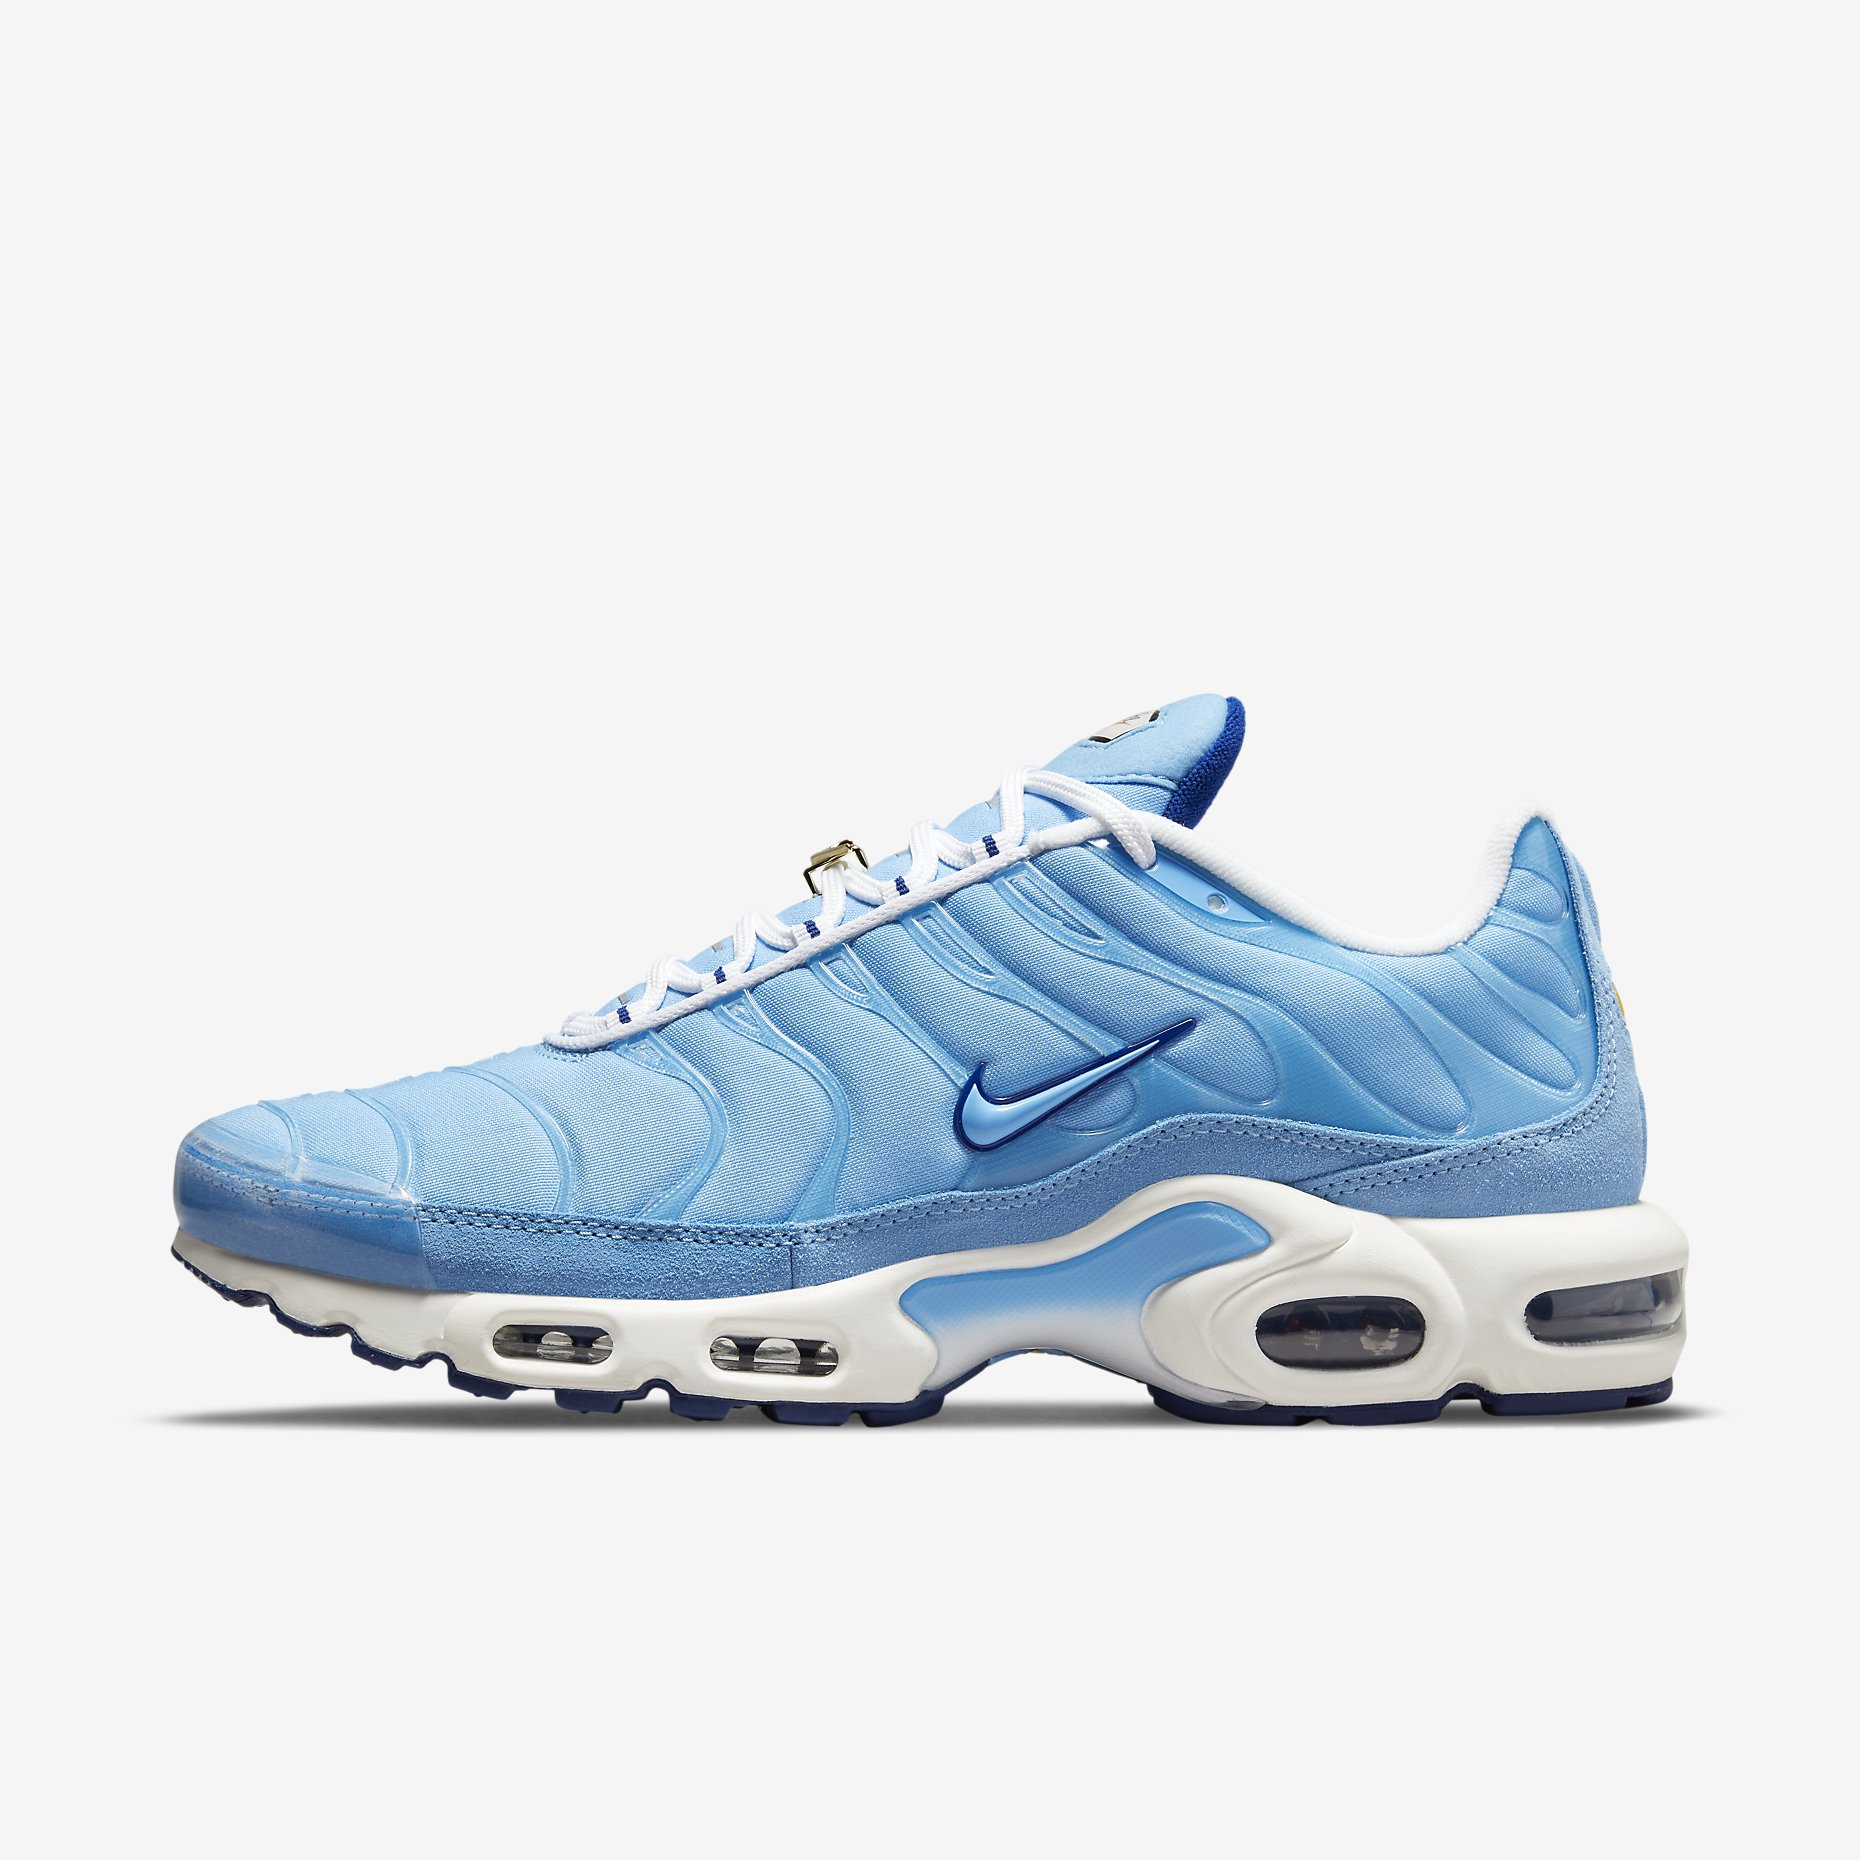 Nike Air Max Plus 'University Blue' - First Use